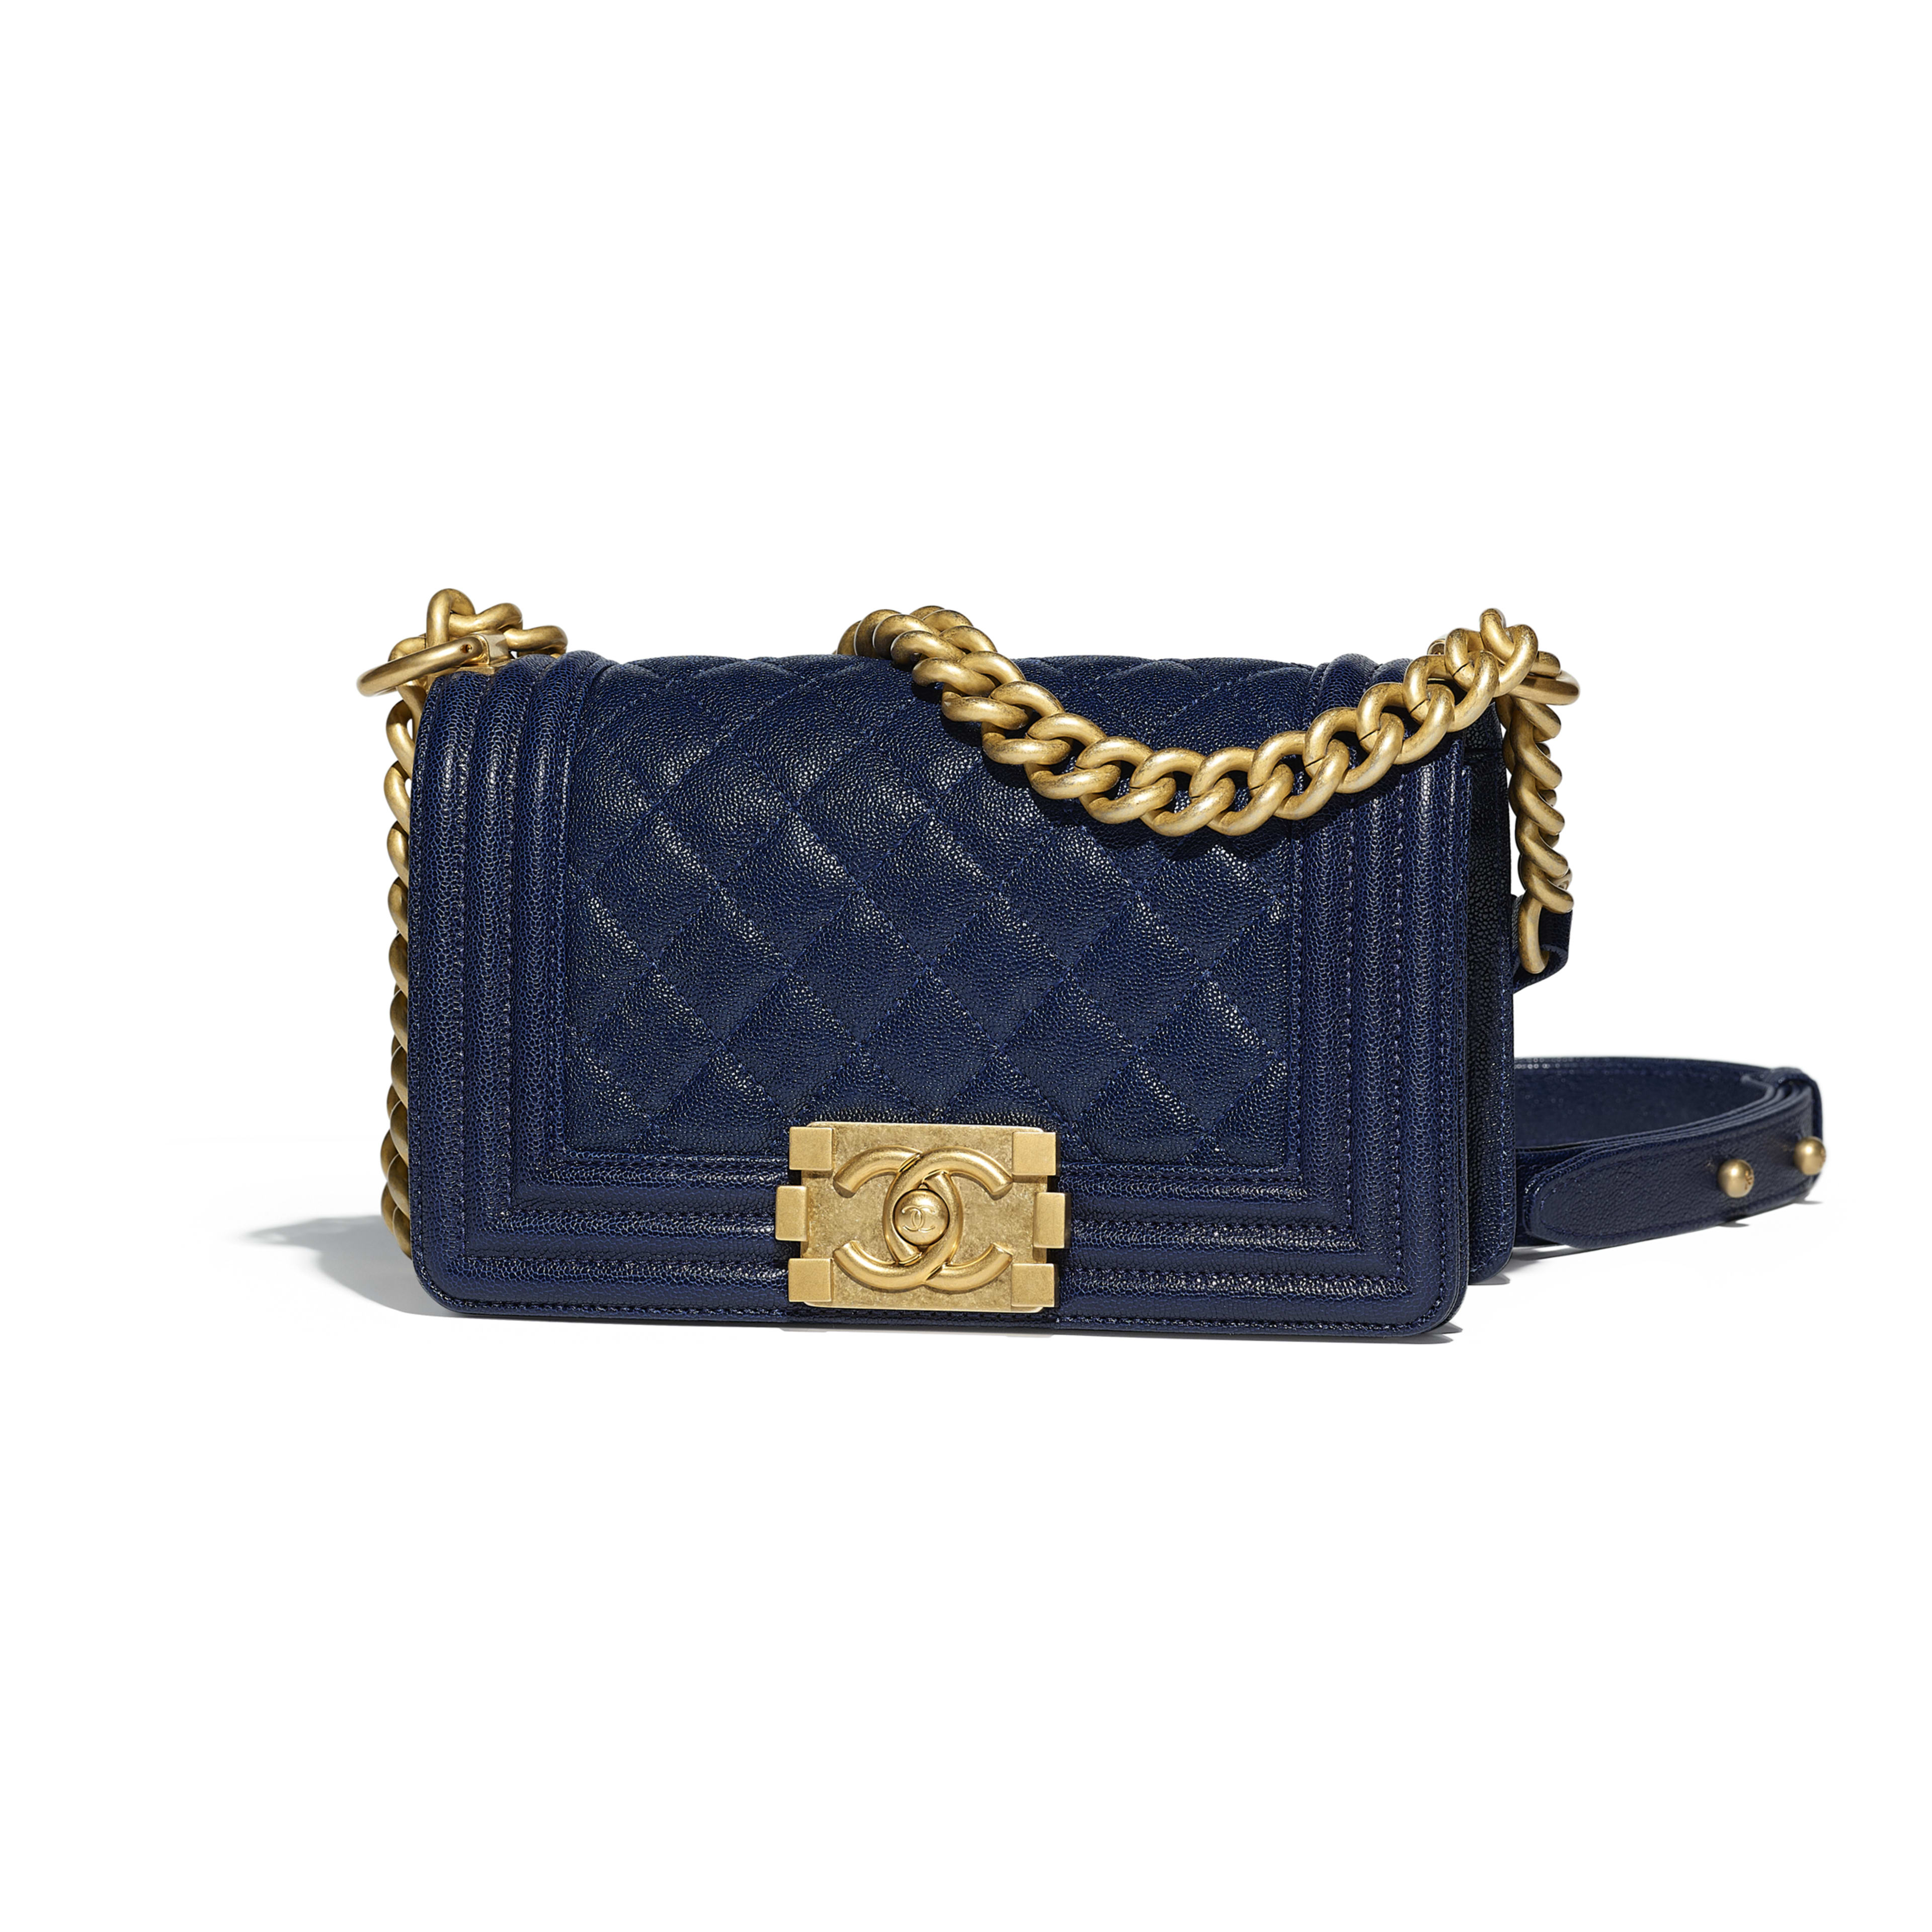 Small BOY CHANEL Handbag Grained Calfskin & Gold-Tone Metal Navy Blue -                                  view 1 - see full sized version